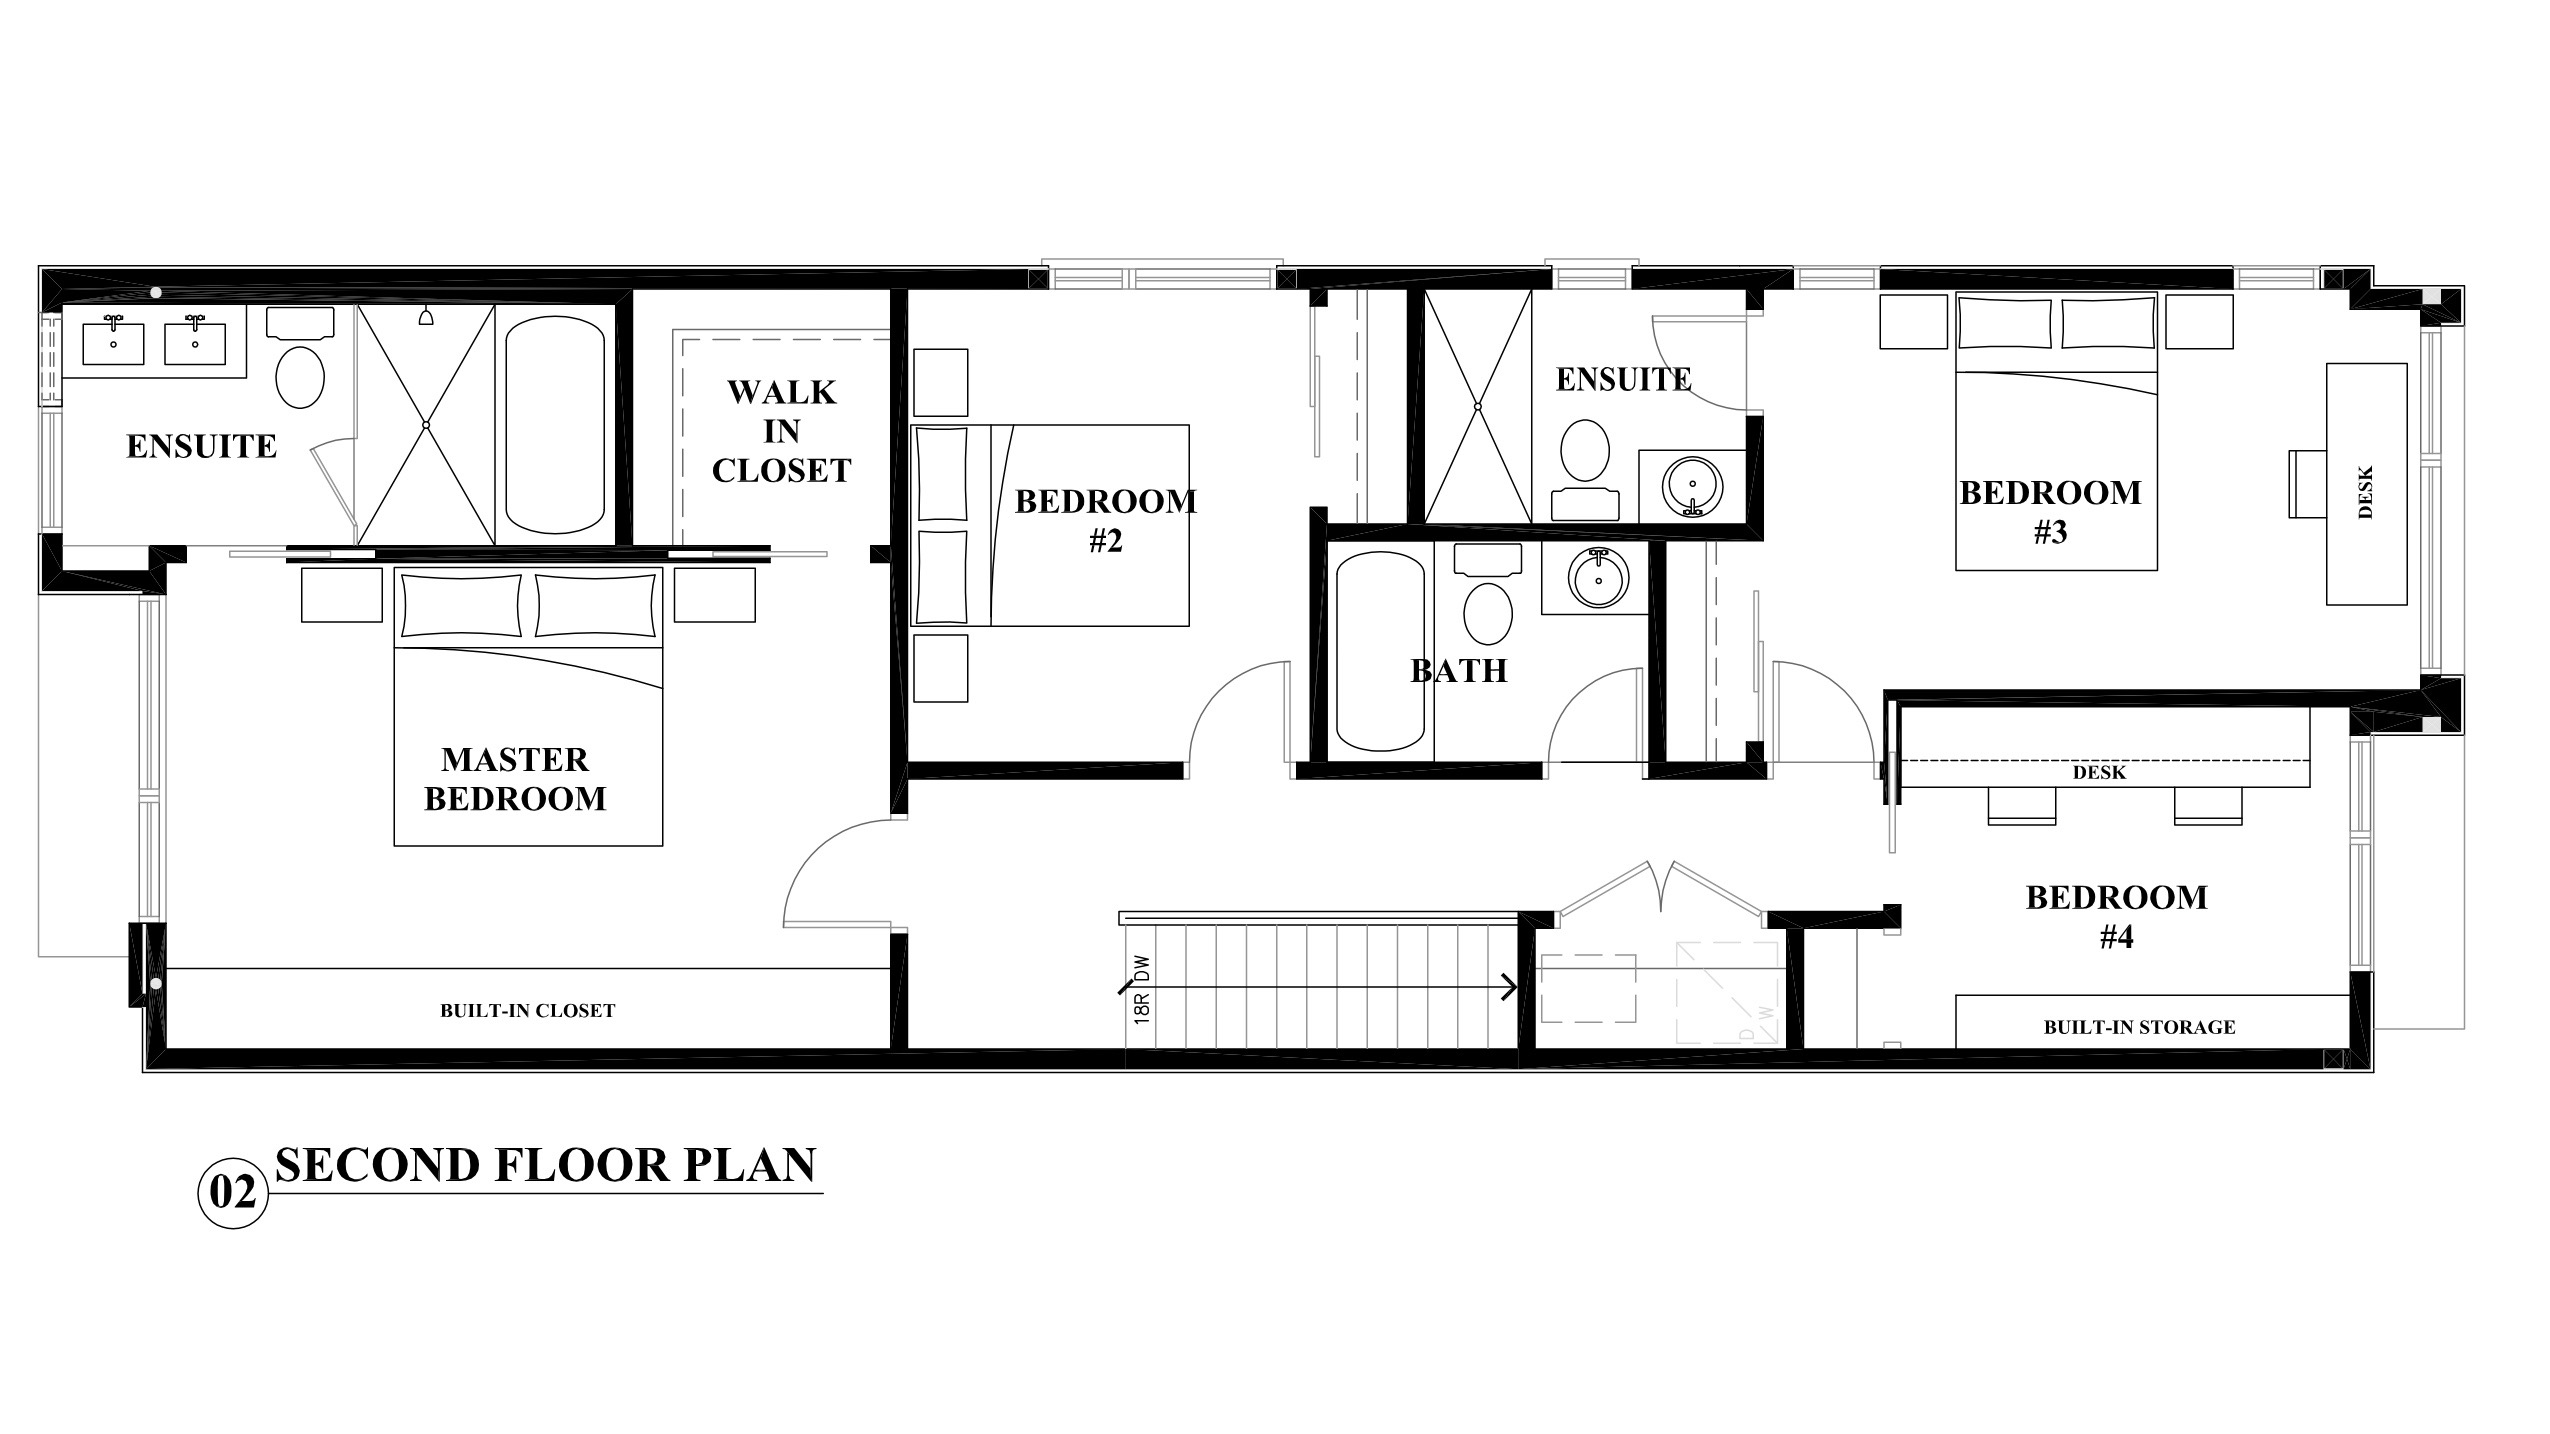 2nd Floor House Plans Second Floor Plan An Interior Design Perspective On